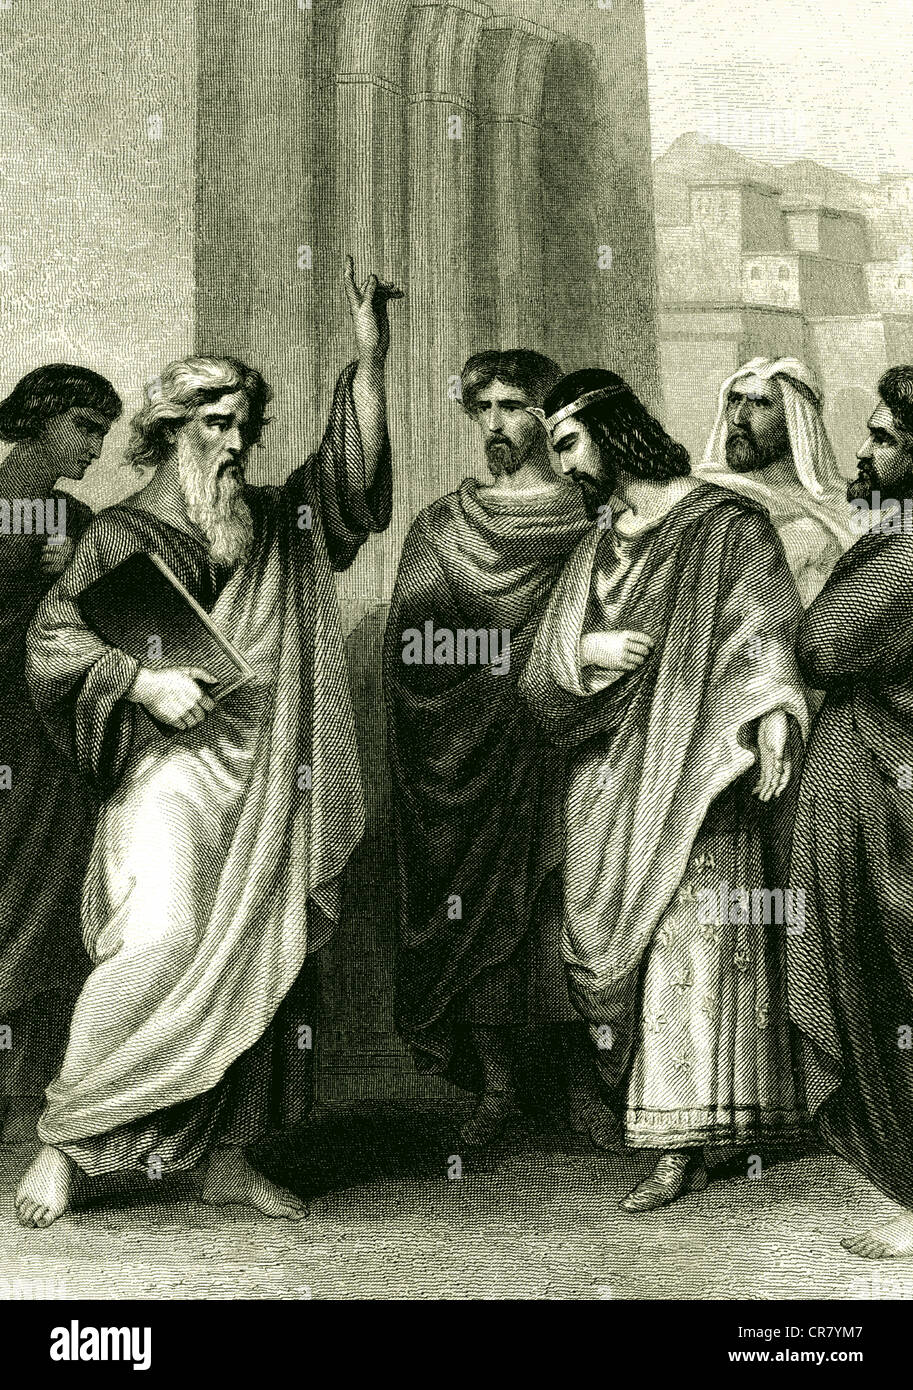 Isaias the Prophet, biblical scene, historical engraving, 1861 - Stock Image